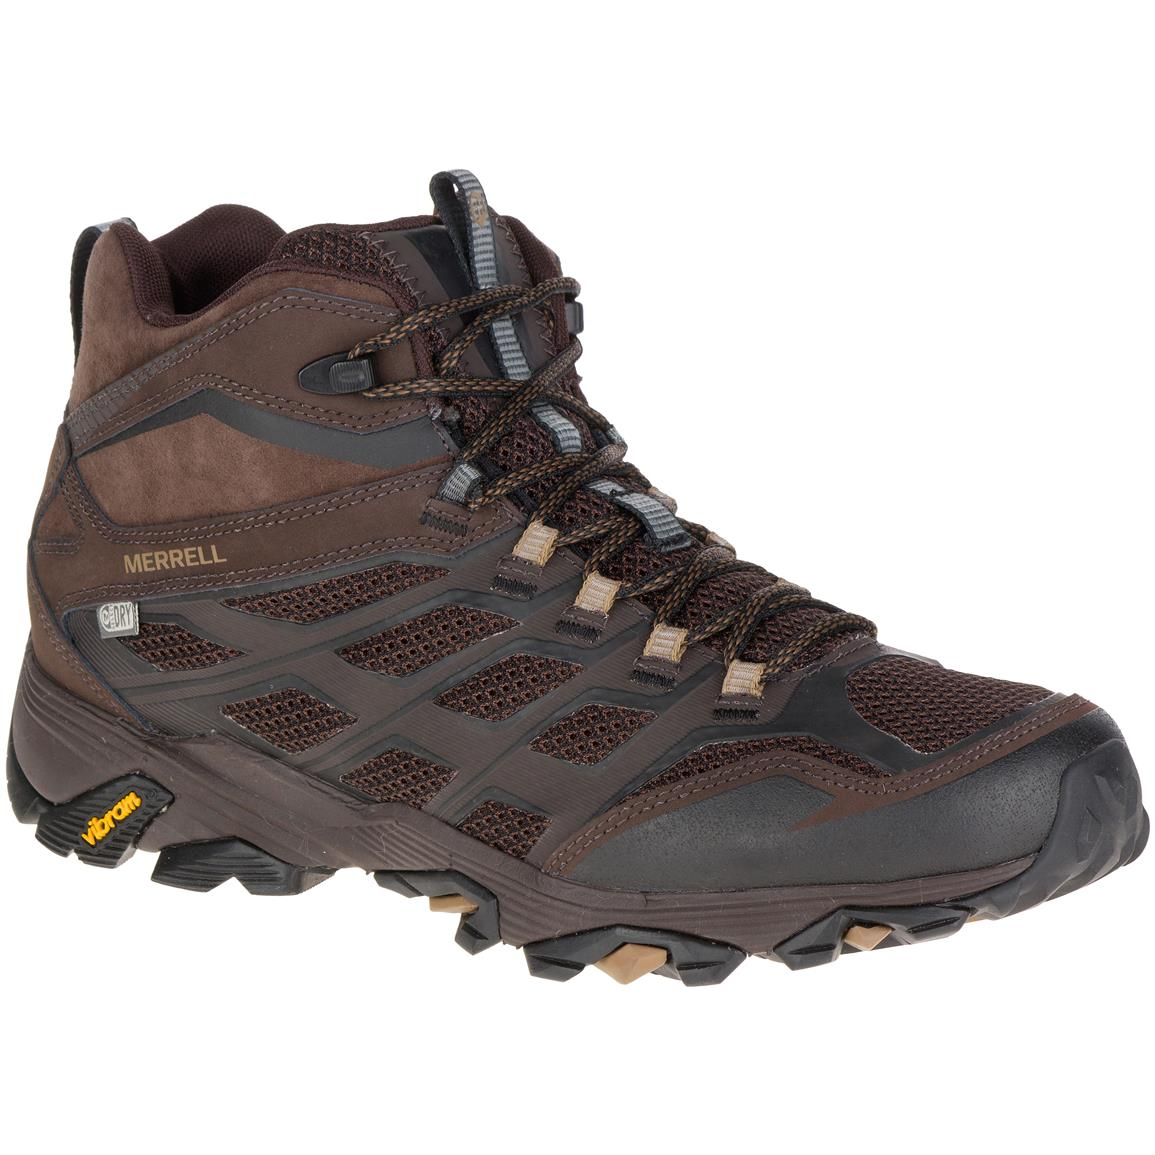 Merrell Men's Moab FST Mid Waterproof Hiking Boots, Brown